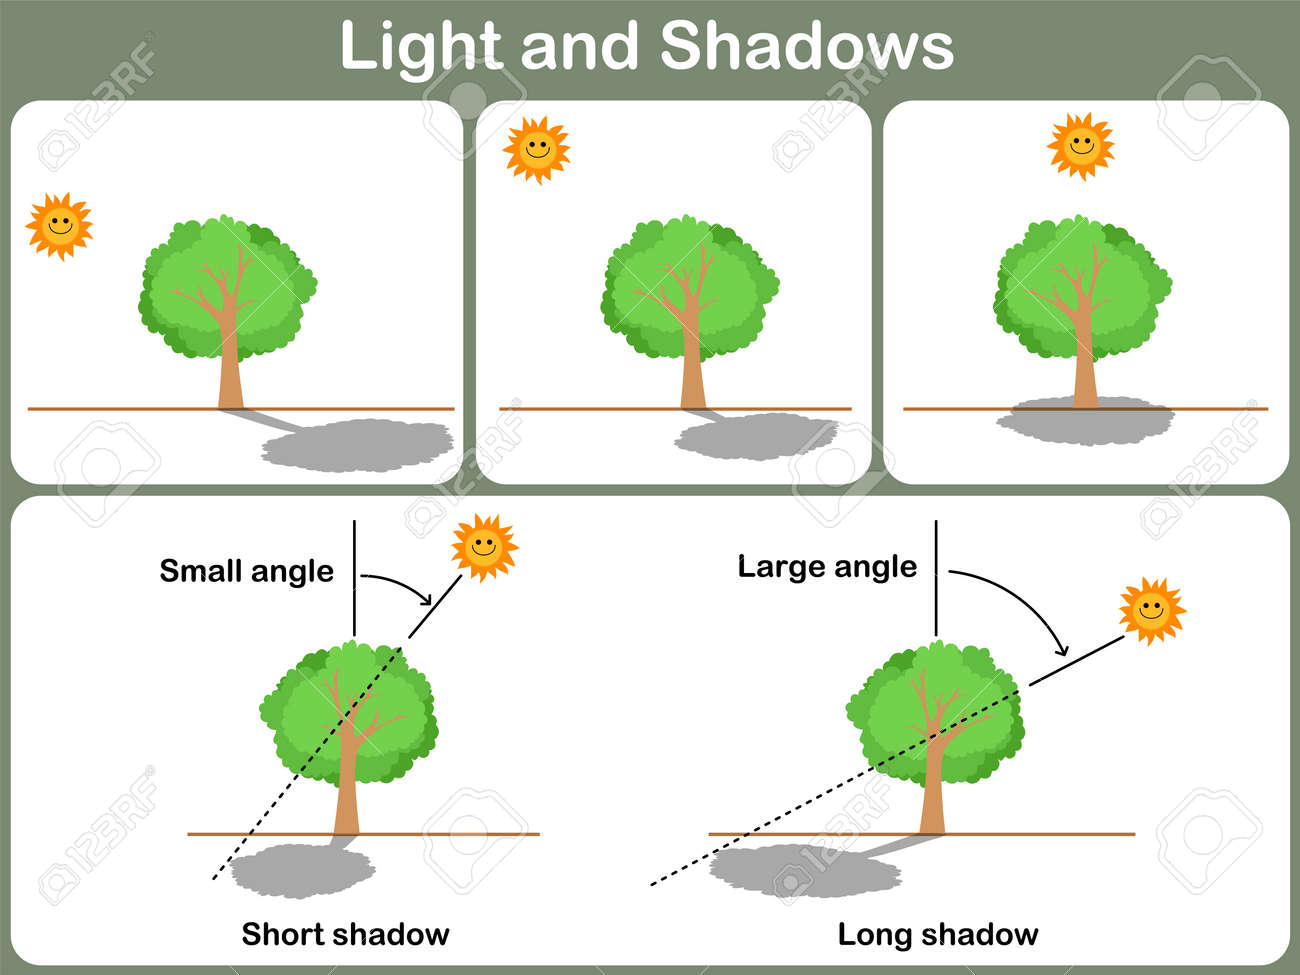 Workbooks worksheets on light and shadows : Leaning Light And Shadow For Kids - Worksheet Royalty Free ...